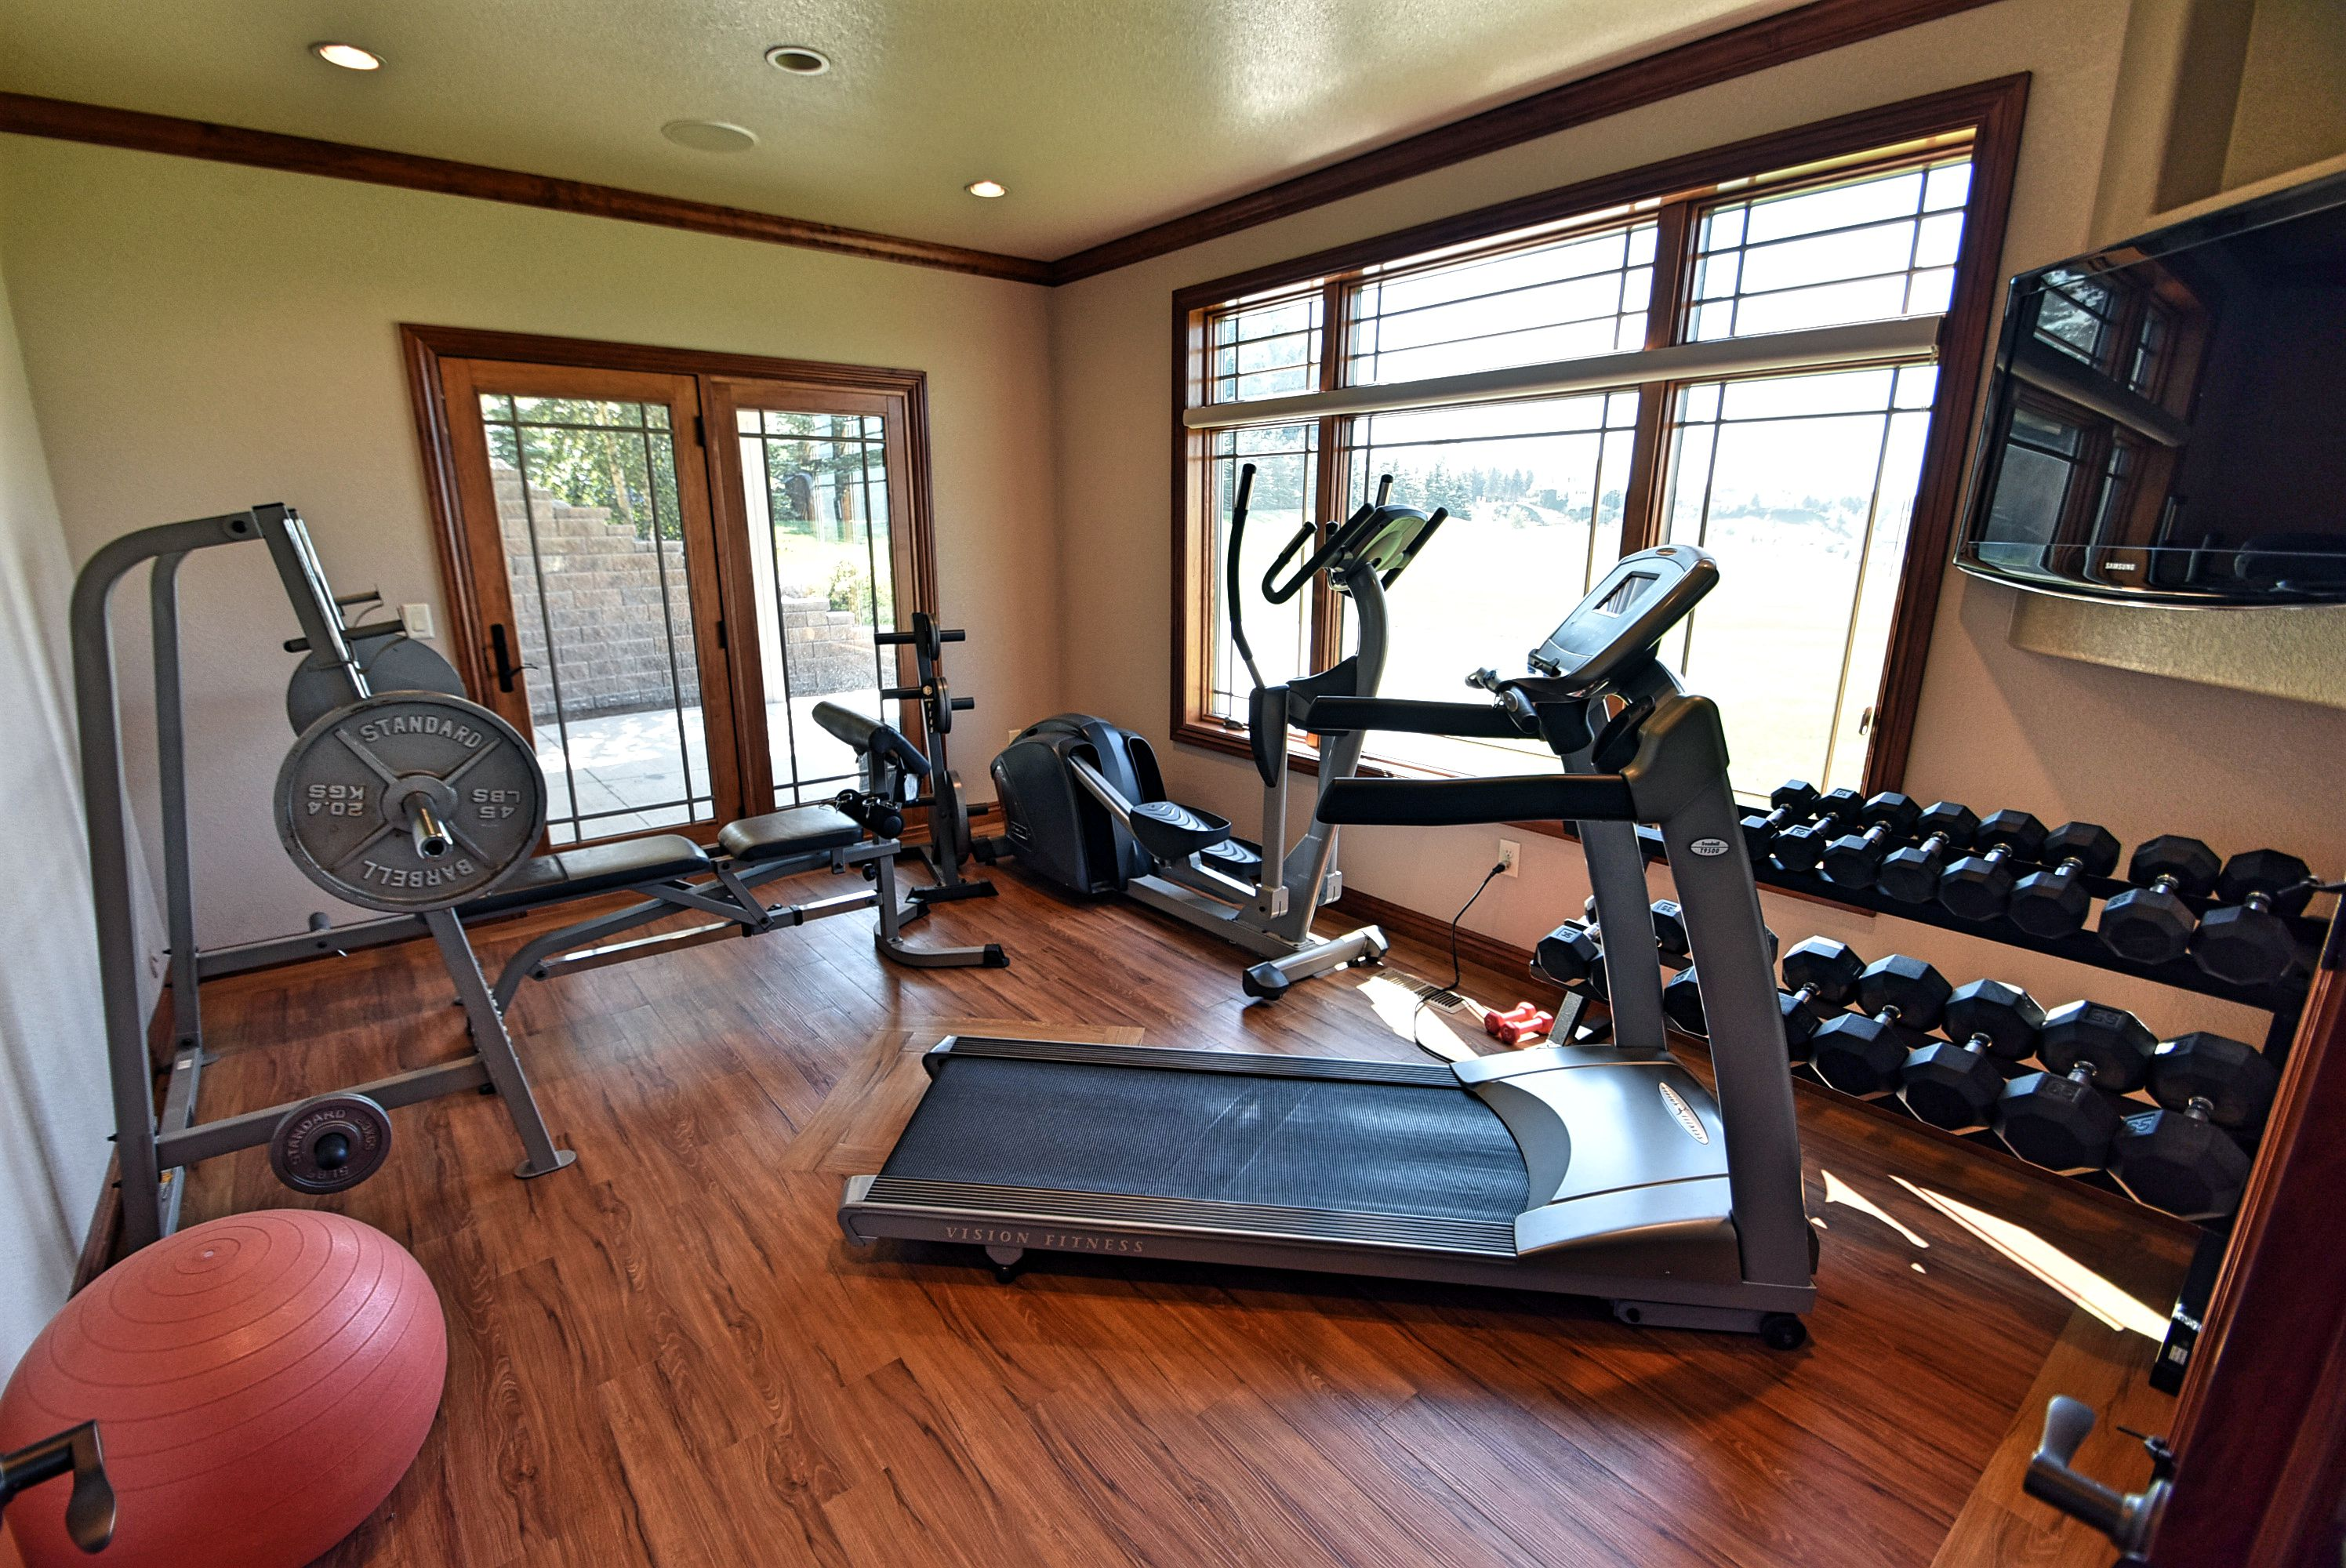 Basement workout room or possible 5th bedroom.